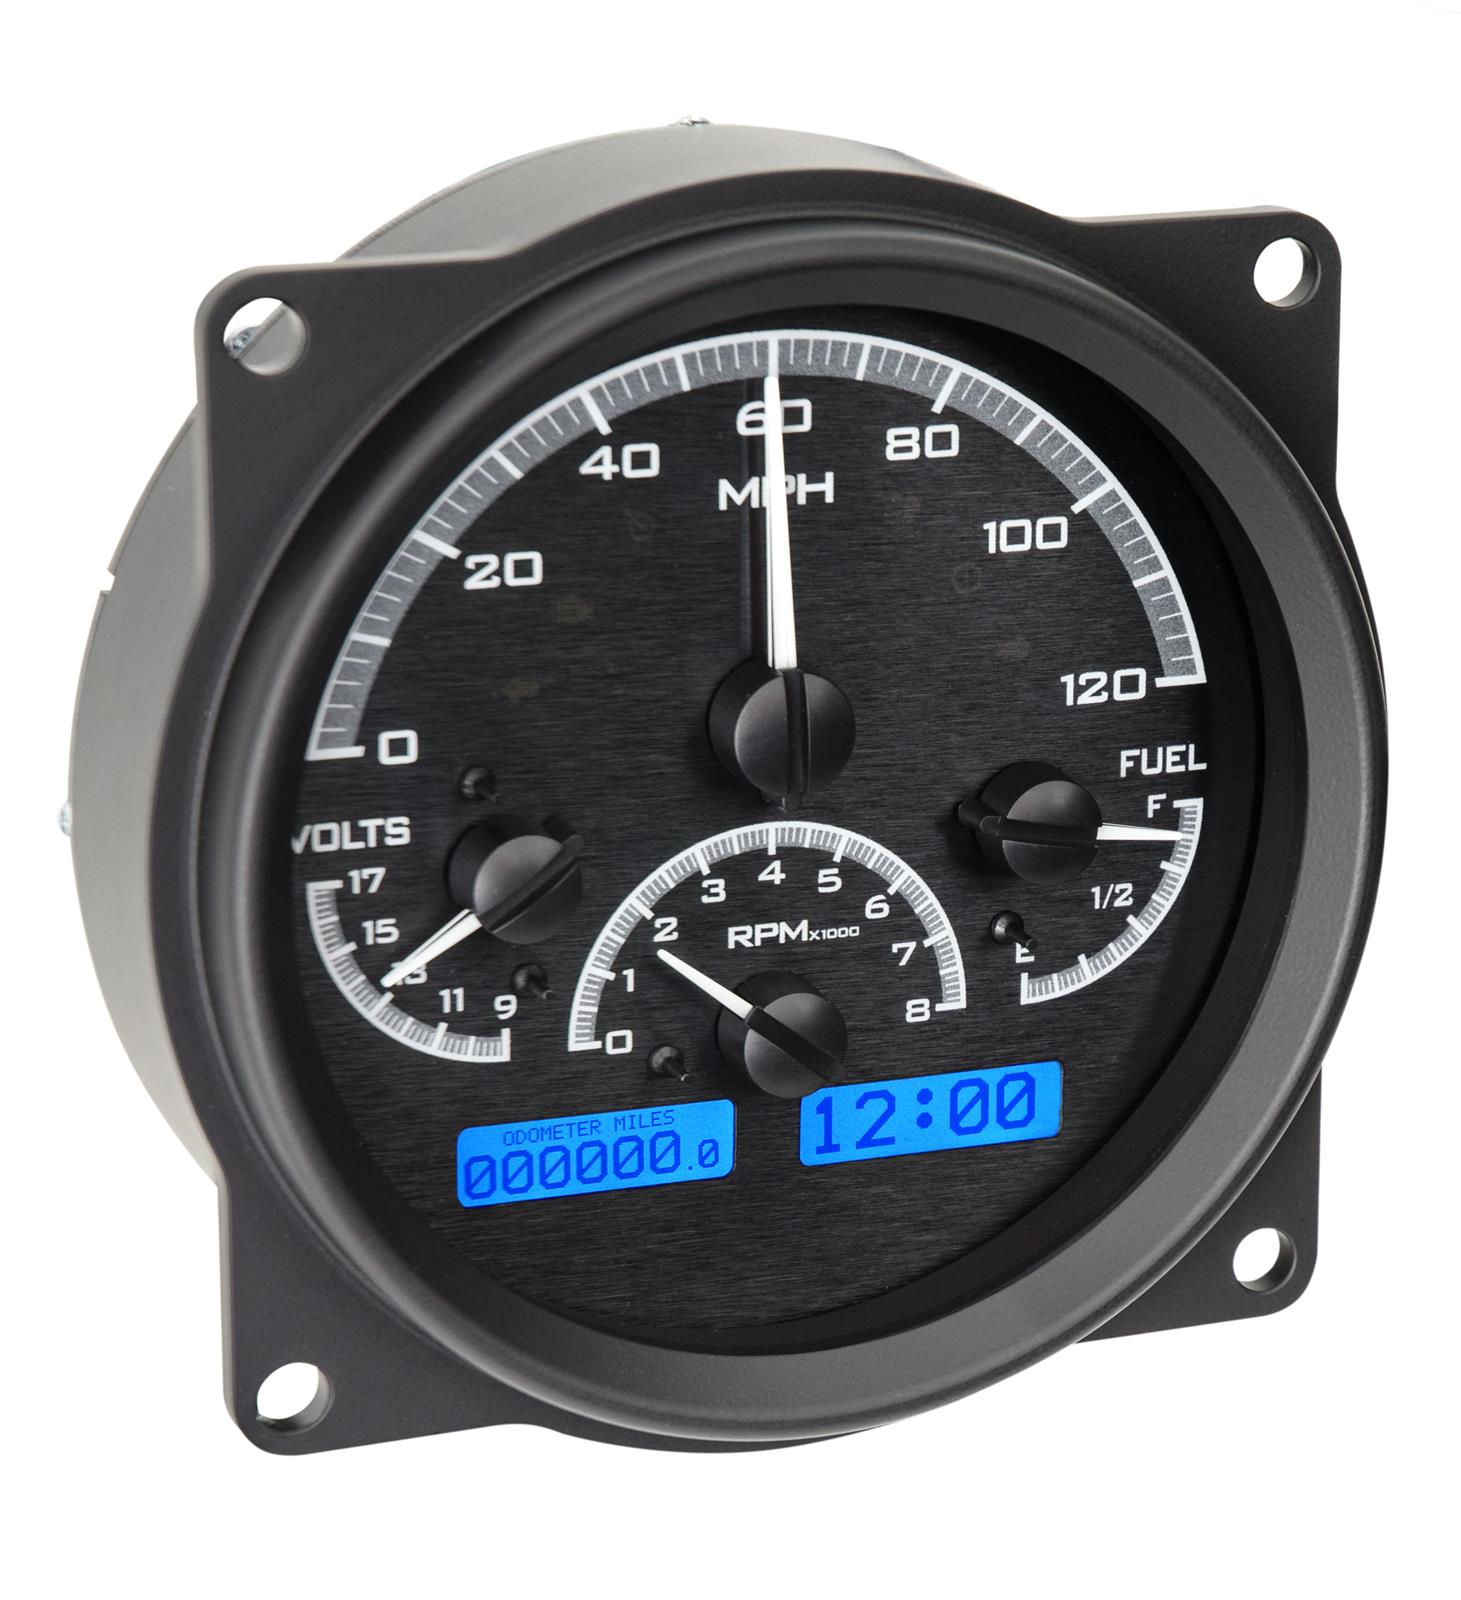 hight resolution of cj5 dakota digital vhx series direct fit analog gauge systems vhx 55j k r free shipping on orders over 99 at summit racing